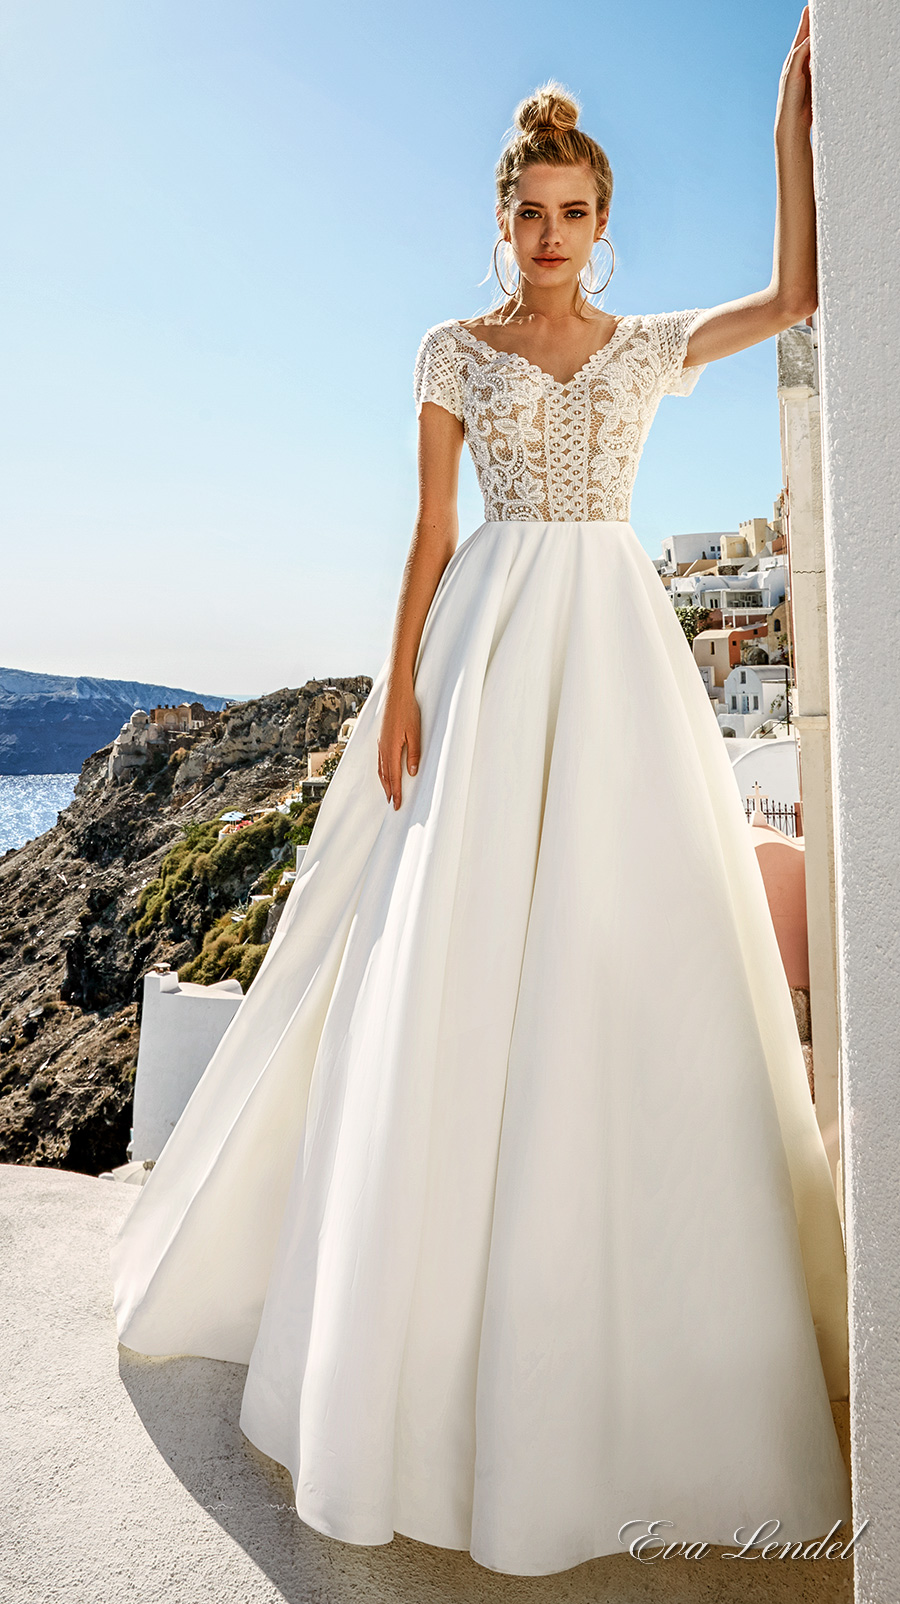 Eva lendel 2017 wedding dresses santorini bridal for Wedding dresses with sleeves 2017